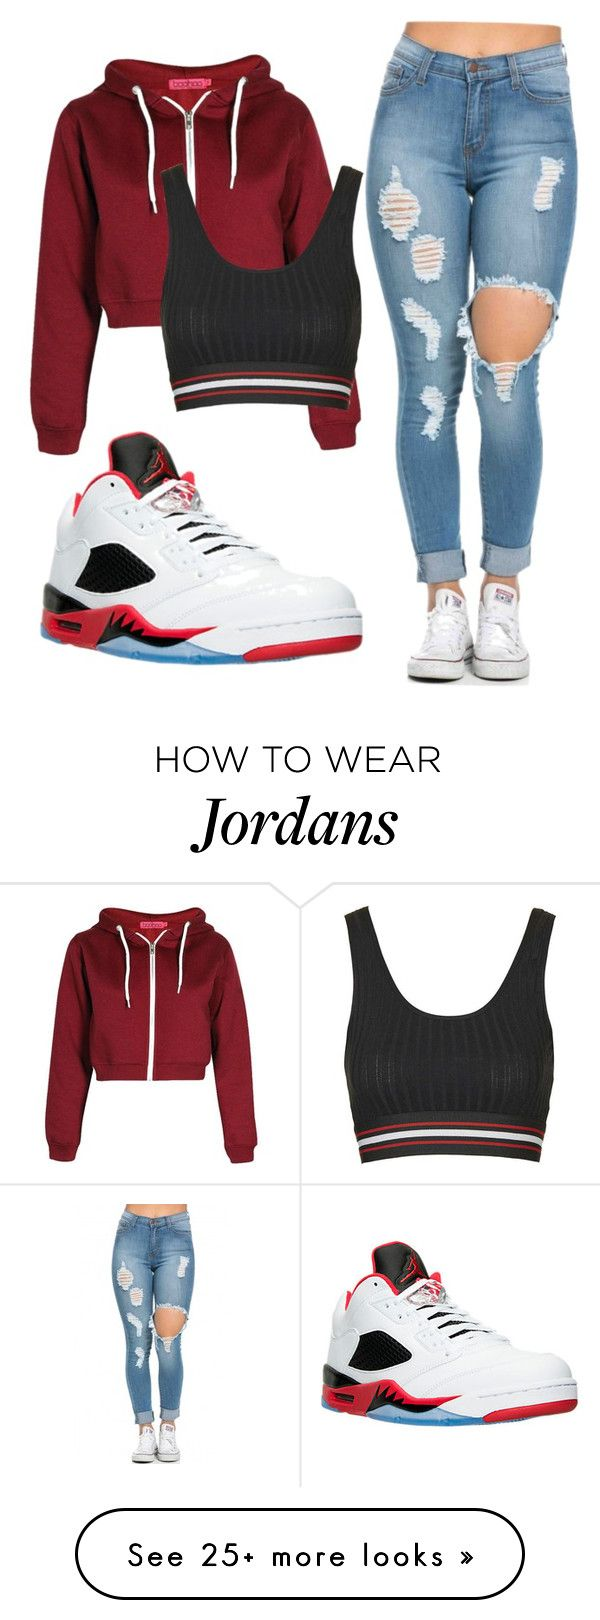 """""""You Do what you want when you poppin✨"""" by daee-x on Polyvore featuring NIKE and Topshop"""